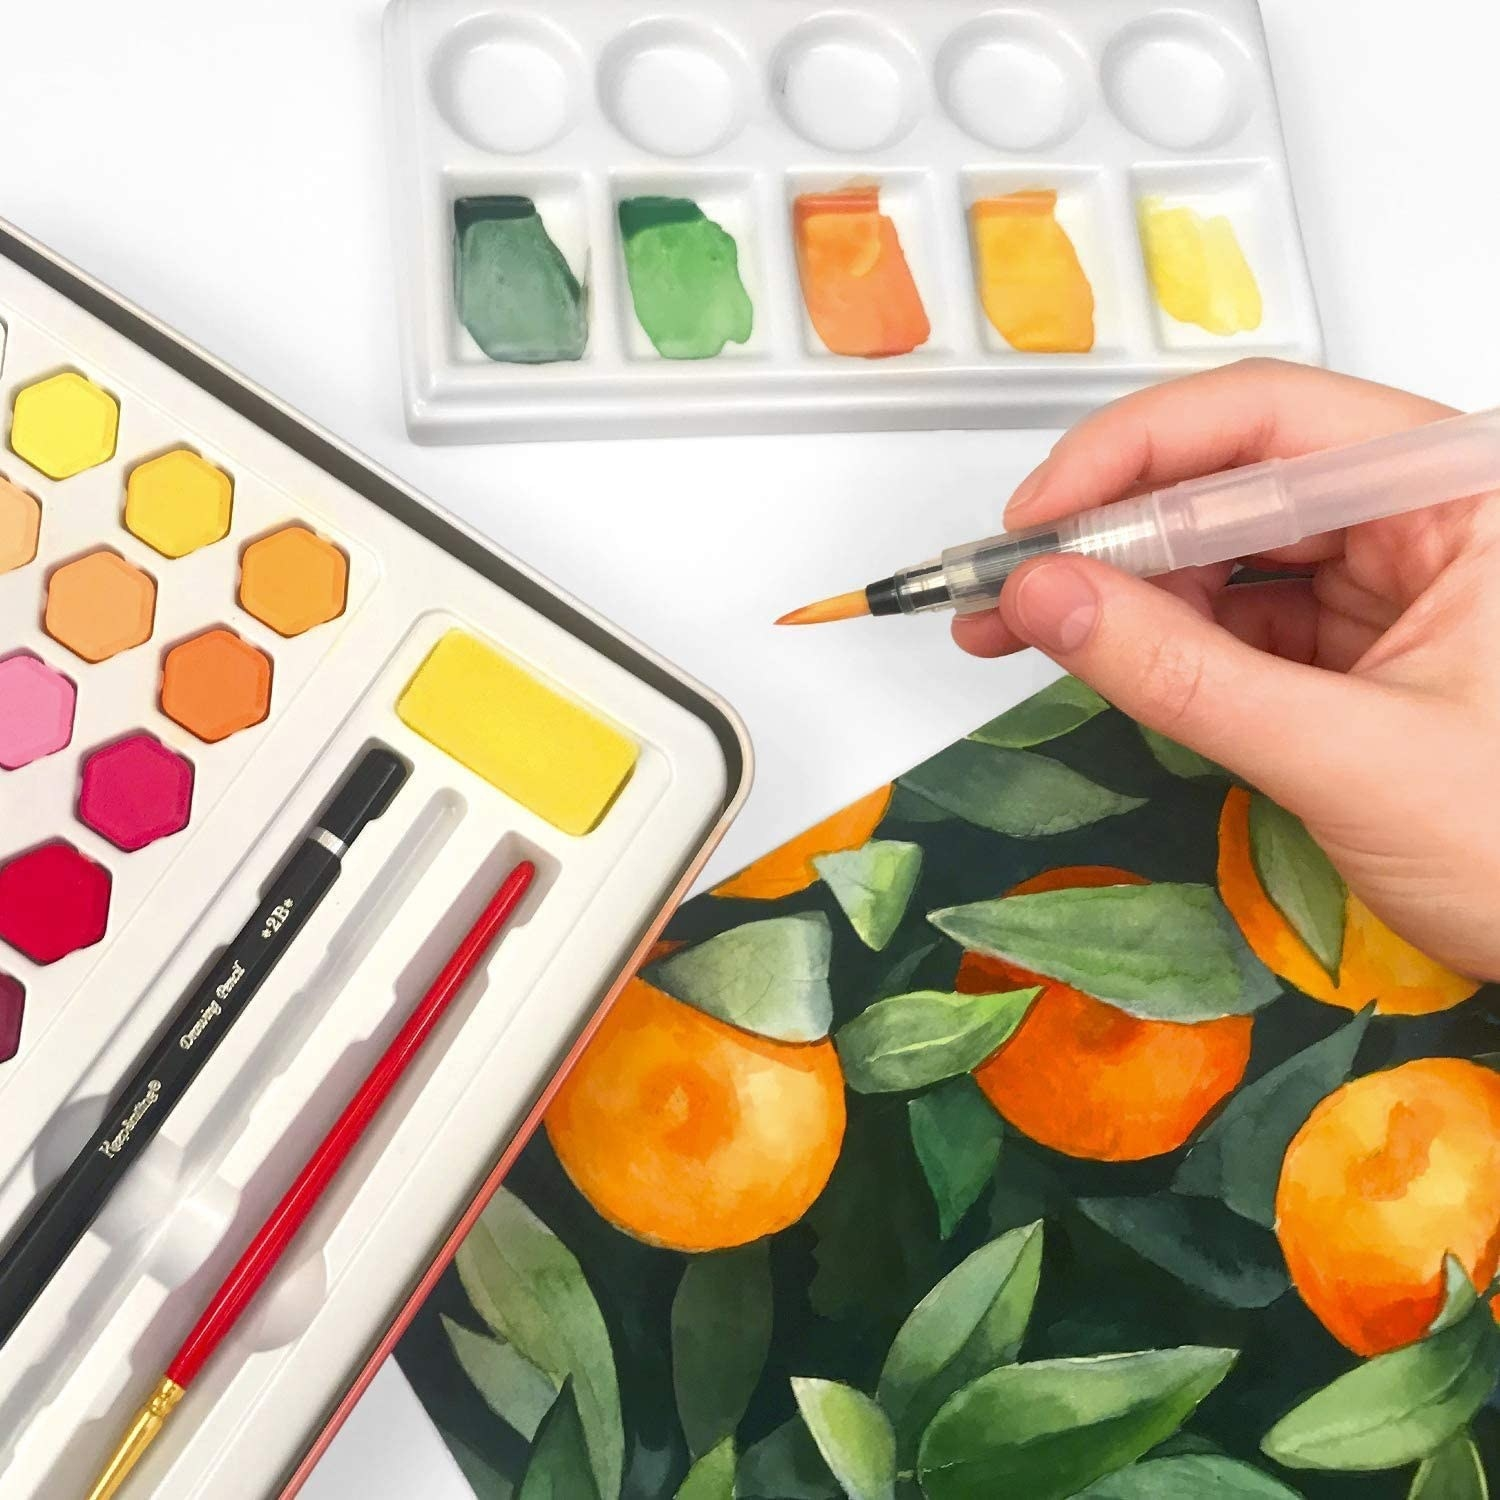 A person using the kit to paint oranges